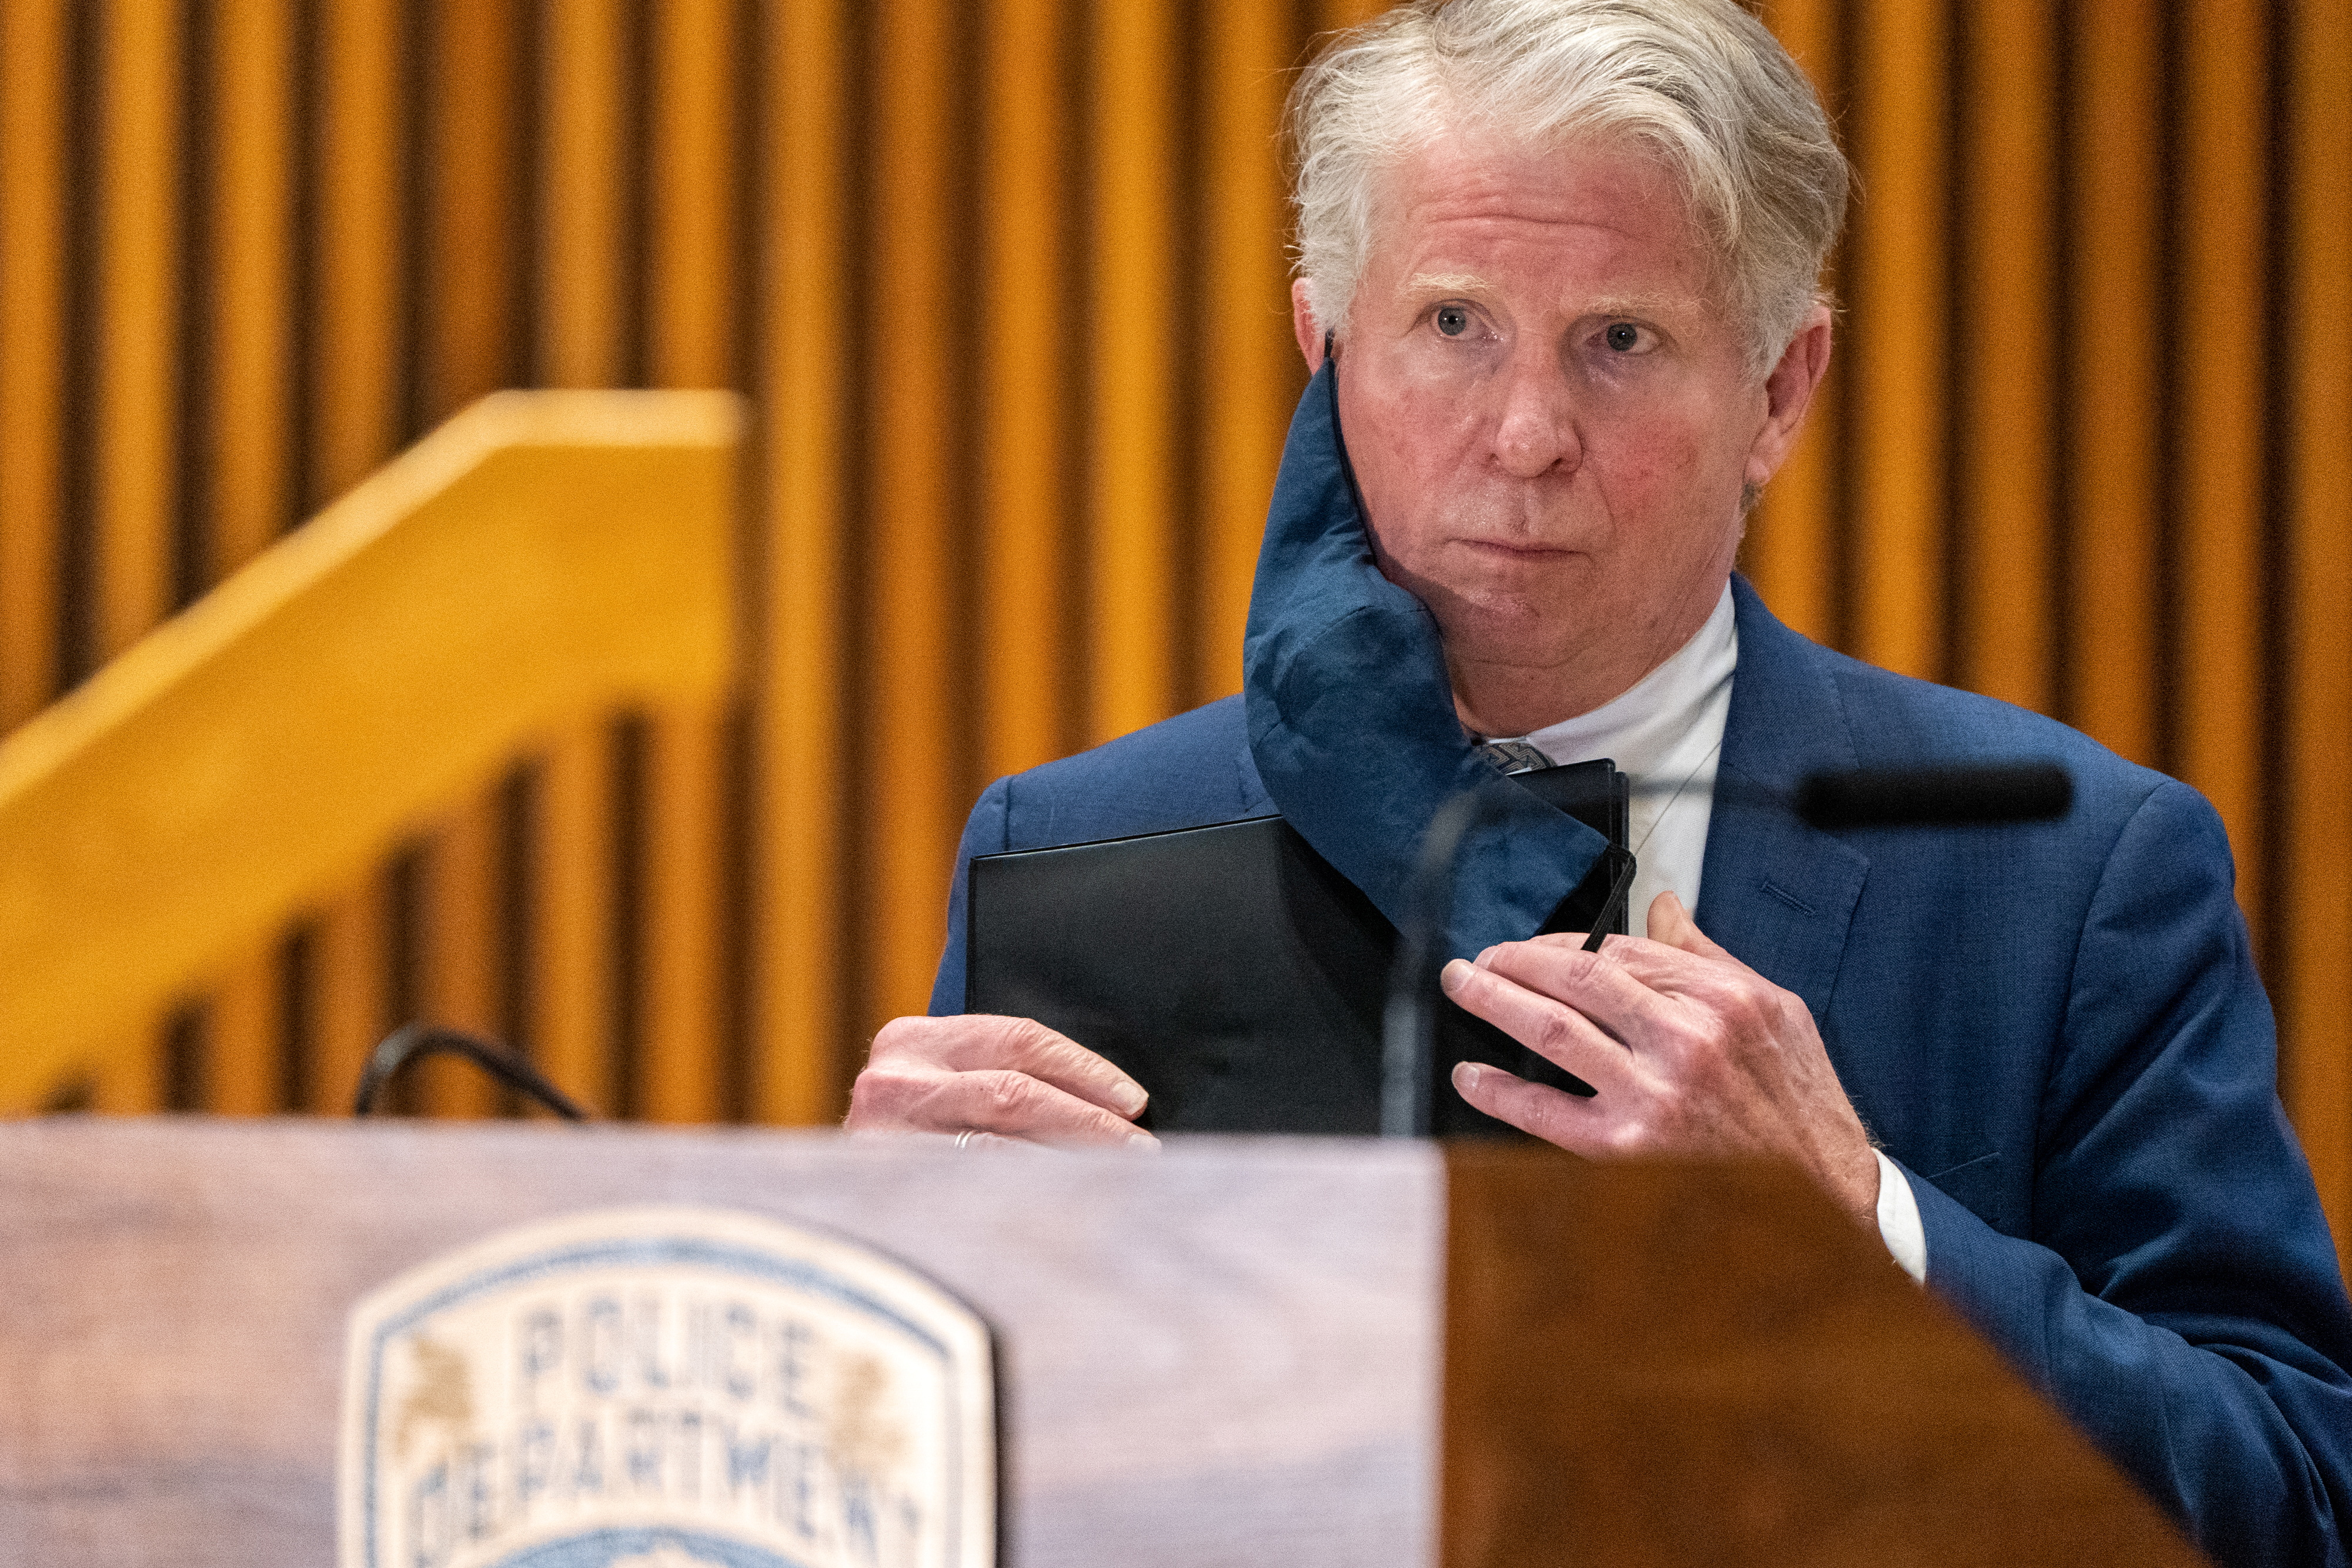 Manhattan district Attorney Cyrus Vance Jr. attends at a news conference announcing charges against Brandon Elliot, following his arrest for attacking an elderly Asian woman, in the Manhattan borough of New York City, U.S., March 31, 2021. REUTERS/Jeenah Moon